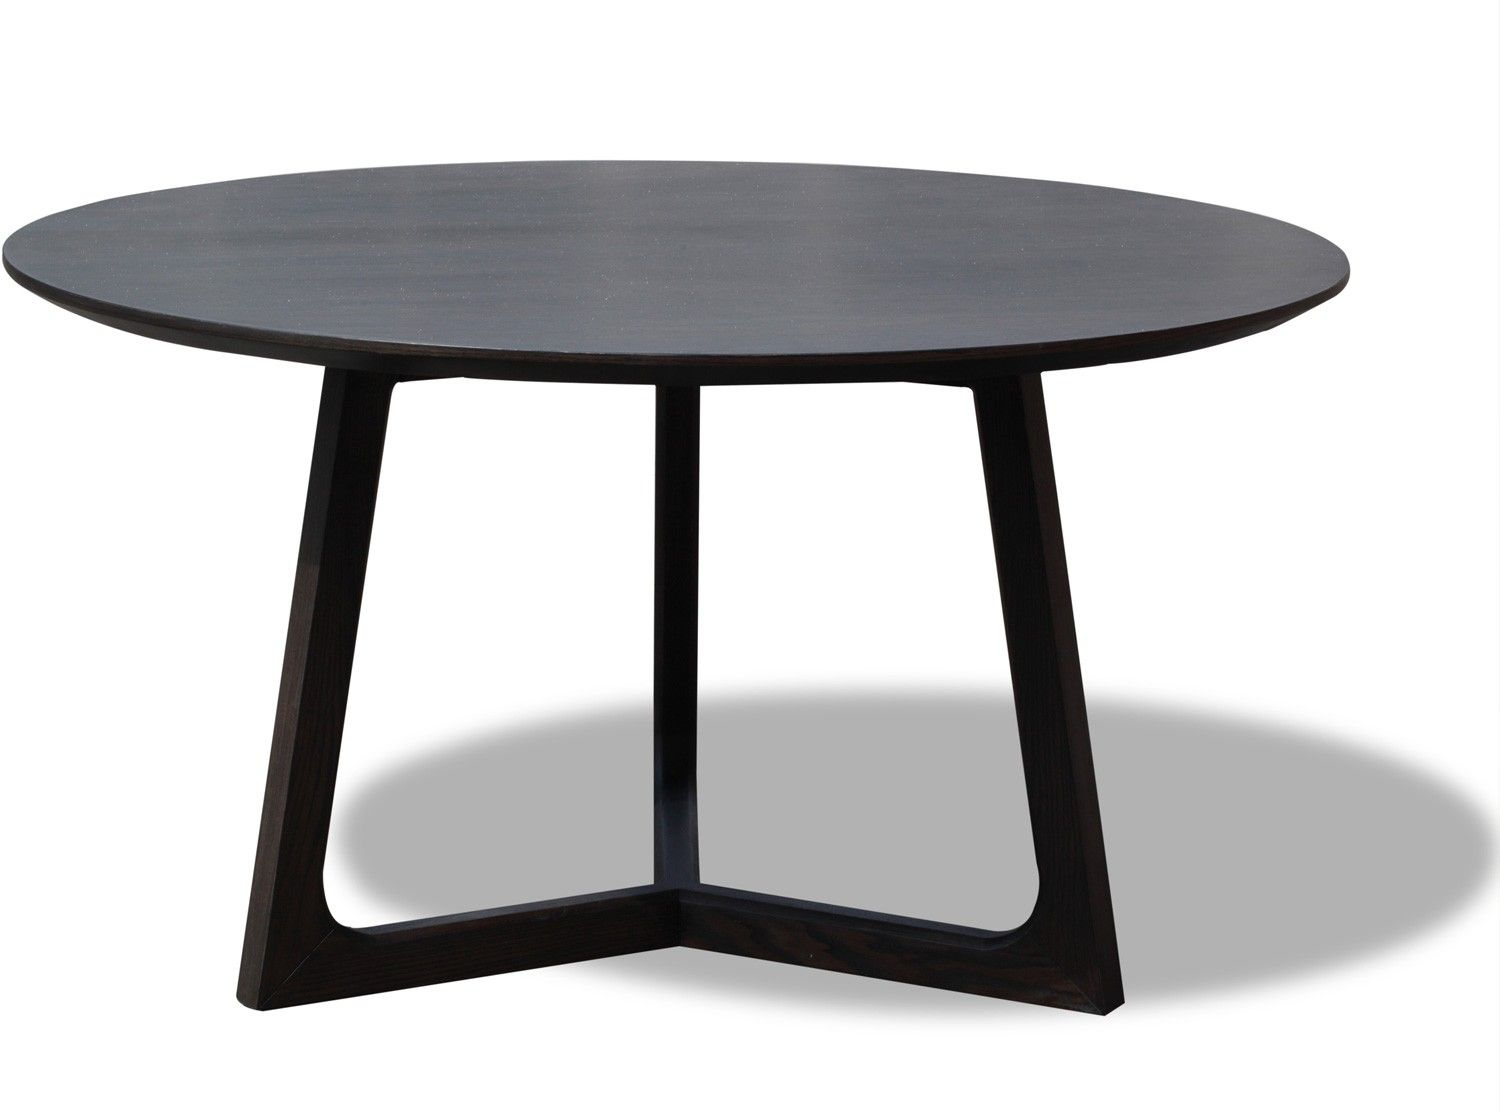 Round dining table for 6 latest descent into maelstrom for Round dining table for 6